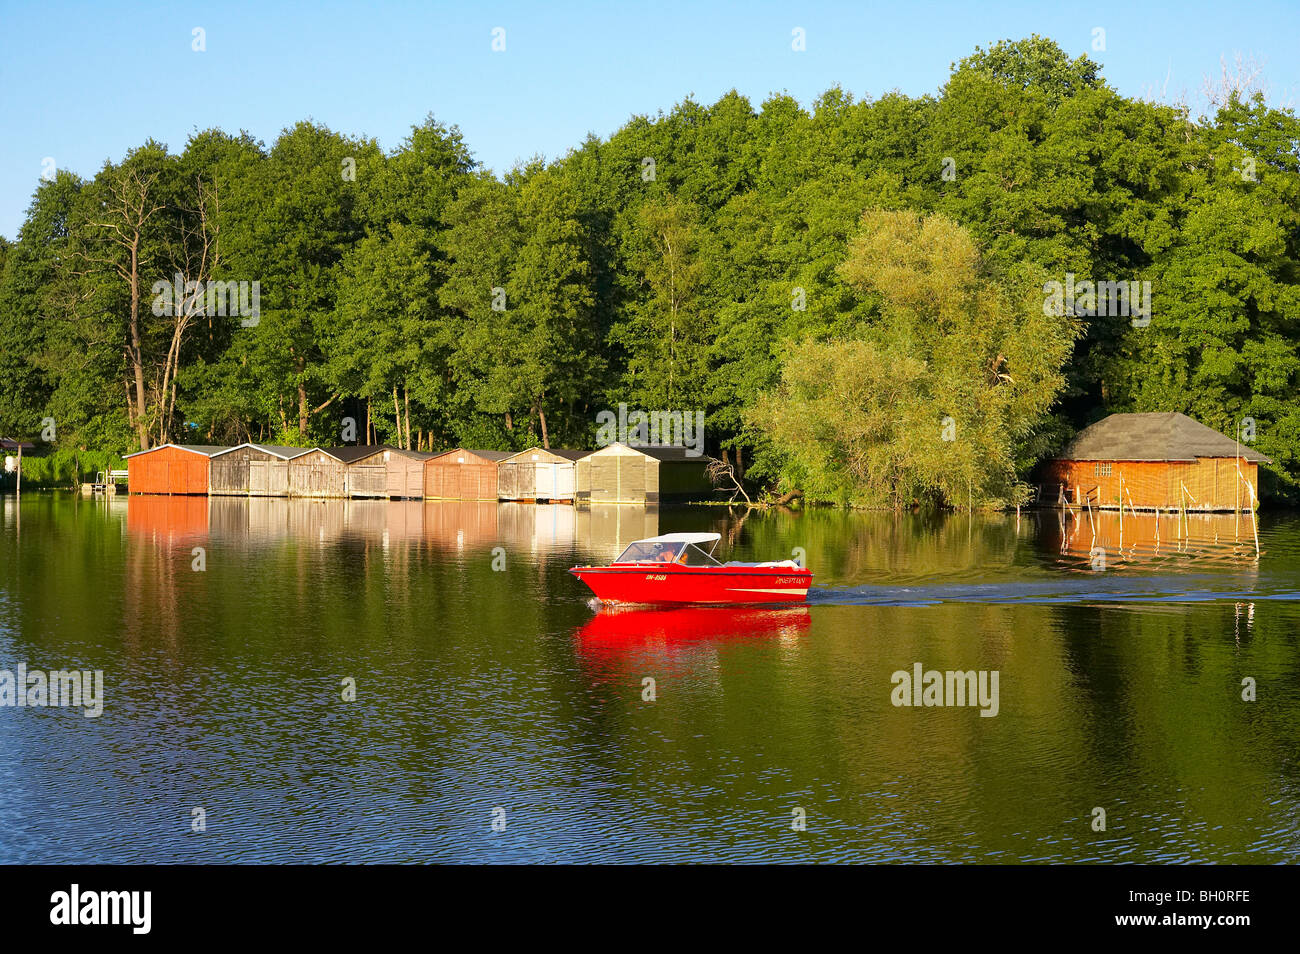 with the houseboat  on the 'Templiner Gewaesser', Templin, Brandenburg, Germany, Europe - Stock Image